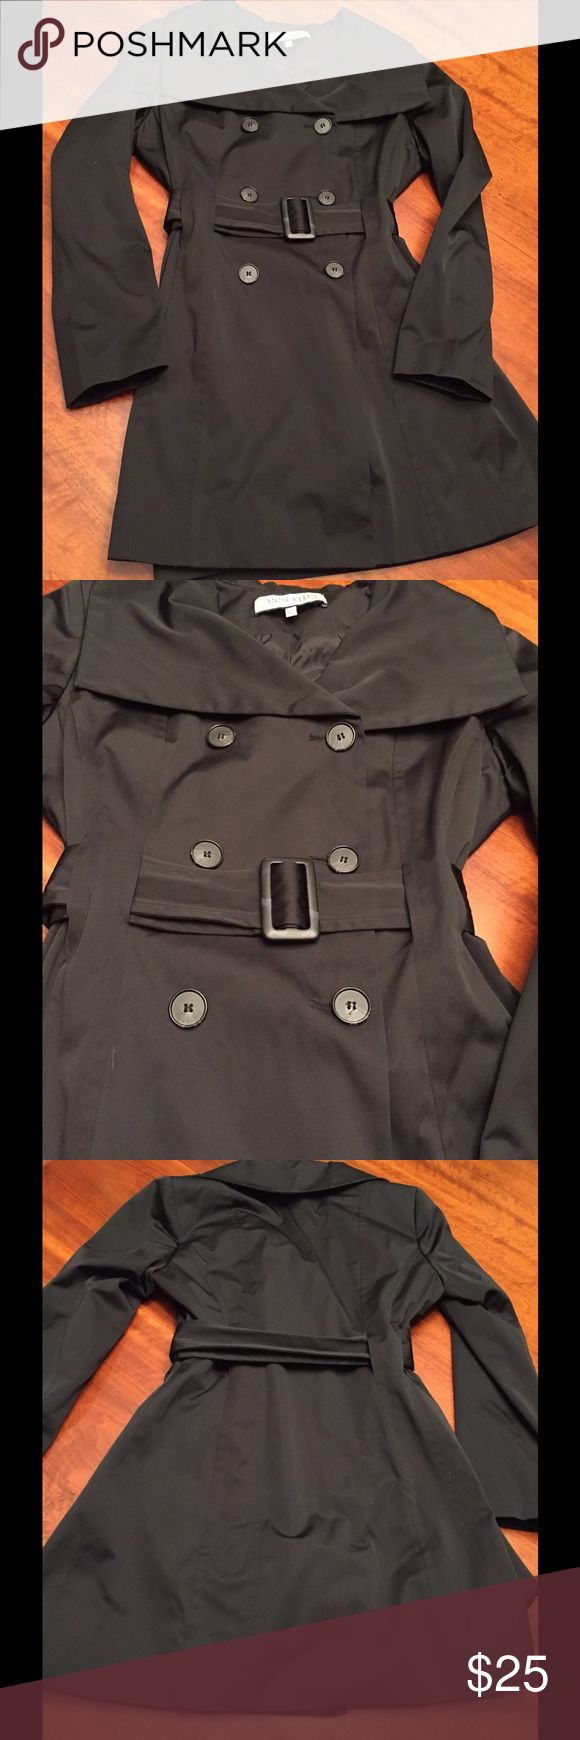 Anne Klein New York black coat- buttons +tie waist Anne Klein New York black coat, size medium. Six buttons - 3 decorative, 3 functional. Tie waist and wide collar. A-line silhouette. Lightweight coat - best for mild weather. Machine wash and line dry. Shell is 52% cotton and 48% polyester, lining is 100% nylon. Good condition - a few little spots that should come out in the wash. Anne Klein Jackets & Coats